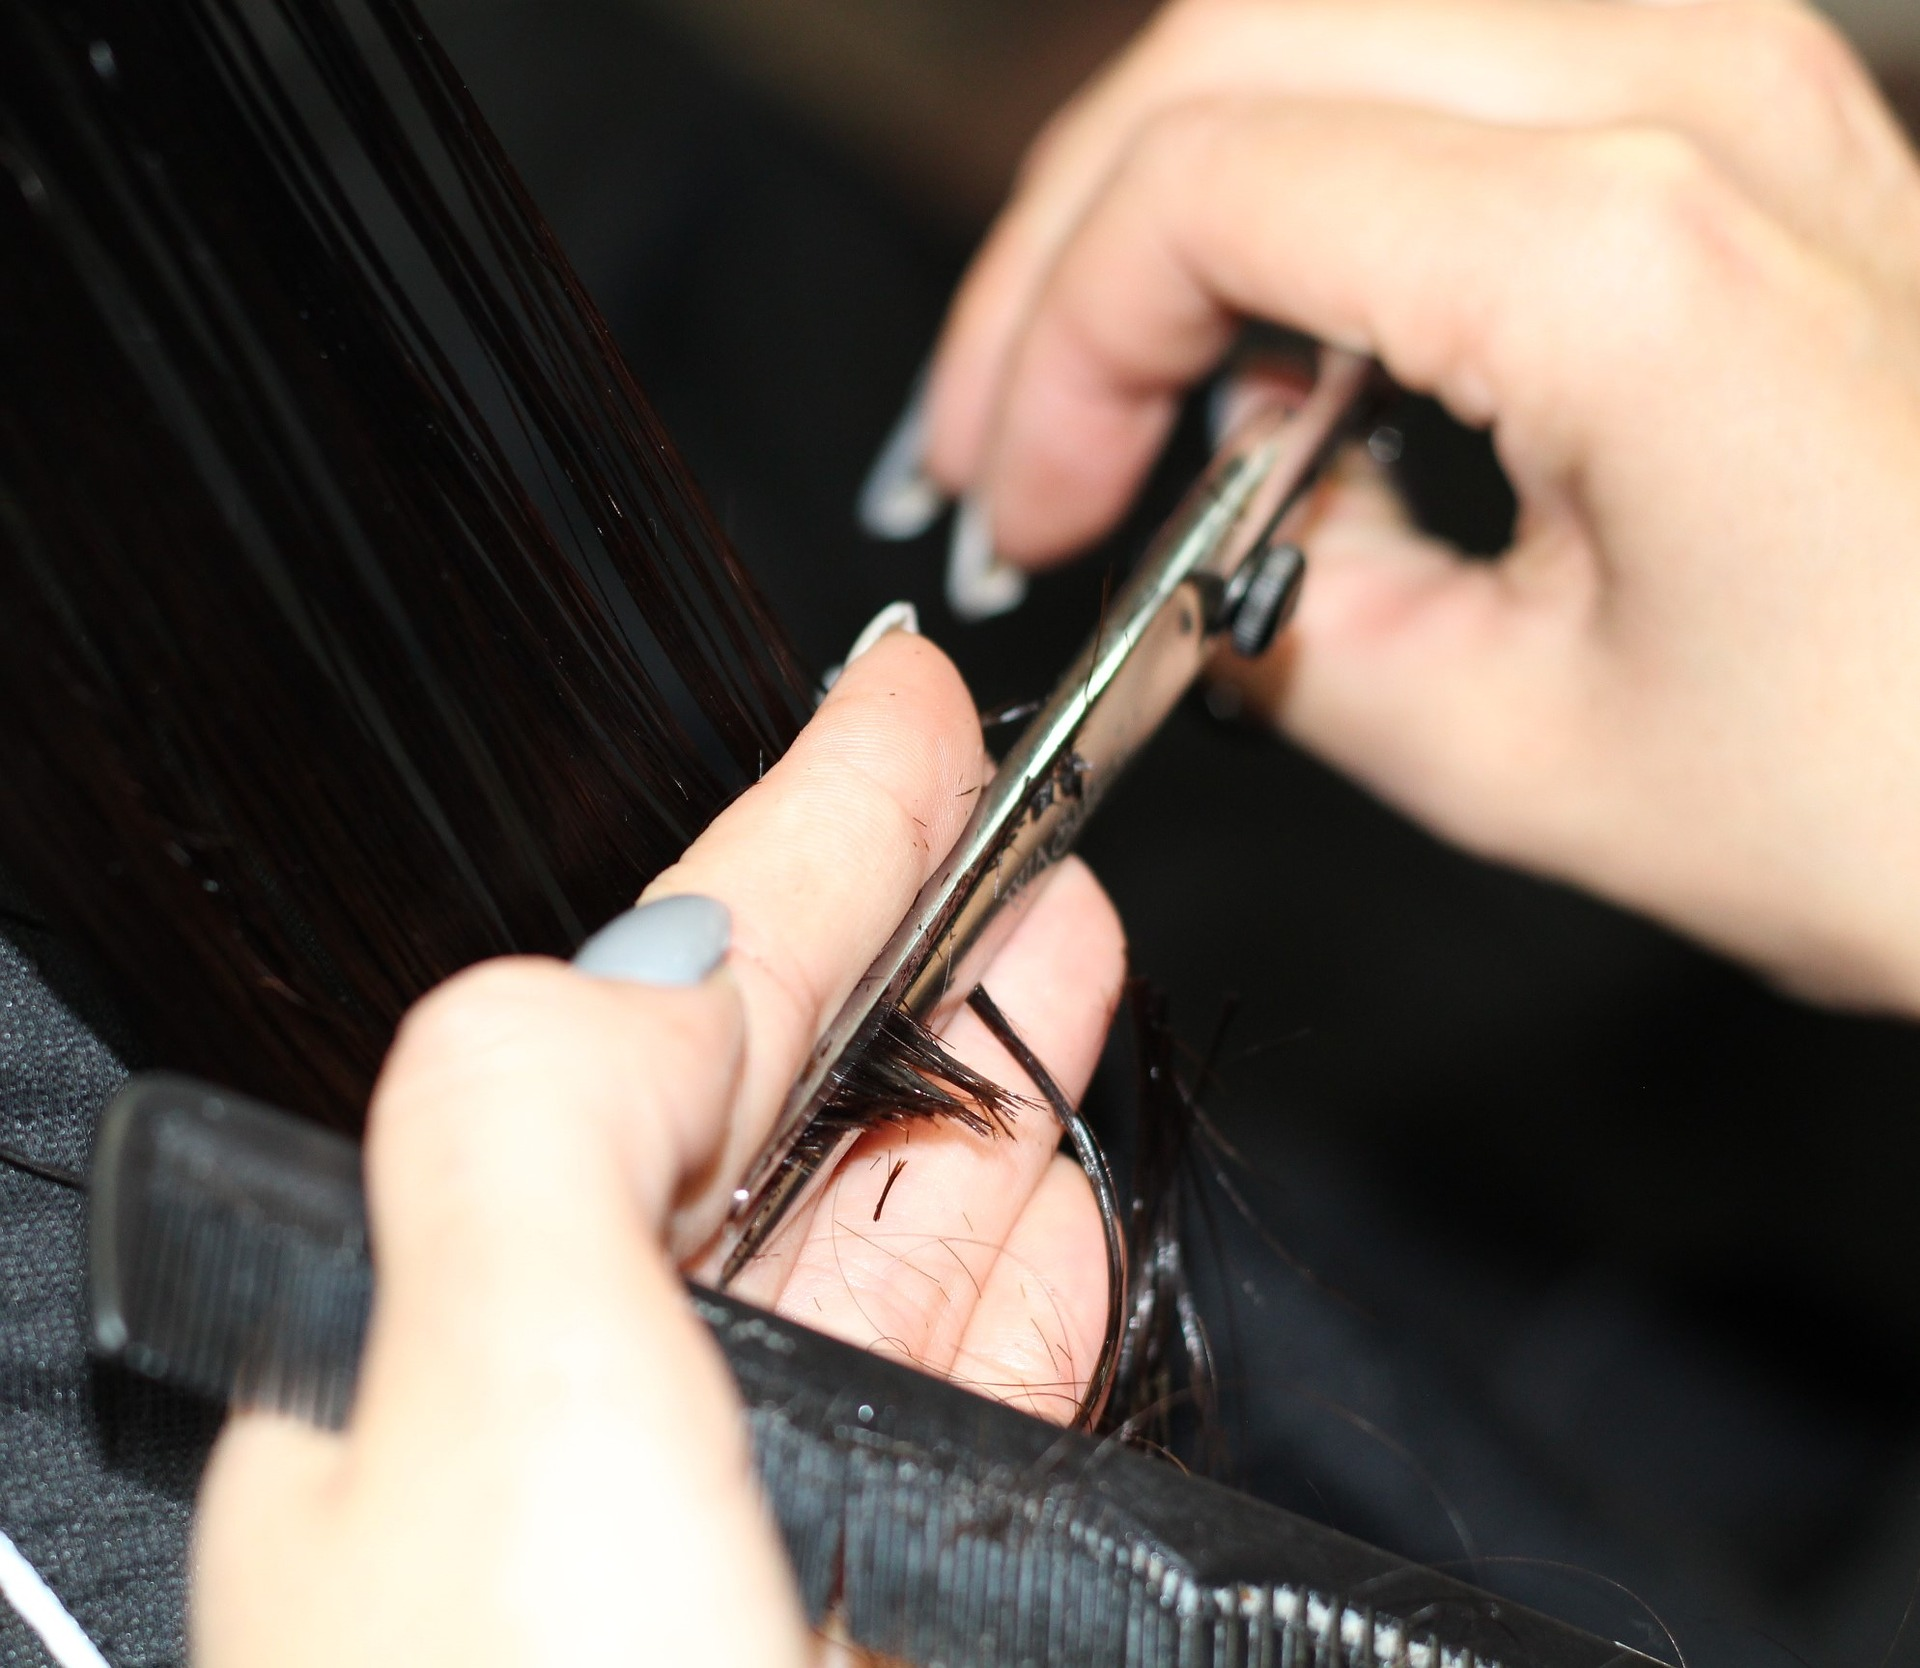 hairstylist holding scissors and a comb in their hands cutting hair